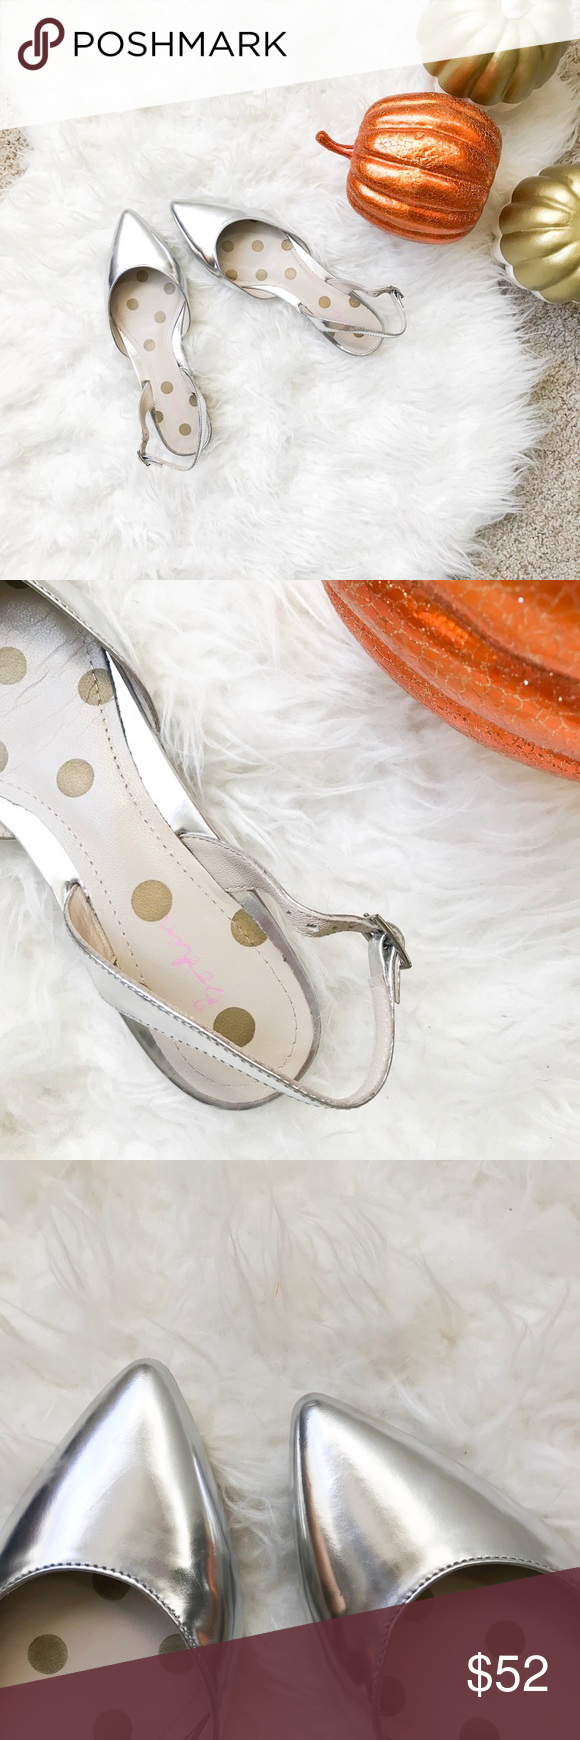 7152292428b Boden Hilary Slingbacks in Silver These gorgeous Hilary slingbacks are the  perfect metallic silver for your Fall wardrobe! Sold out online